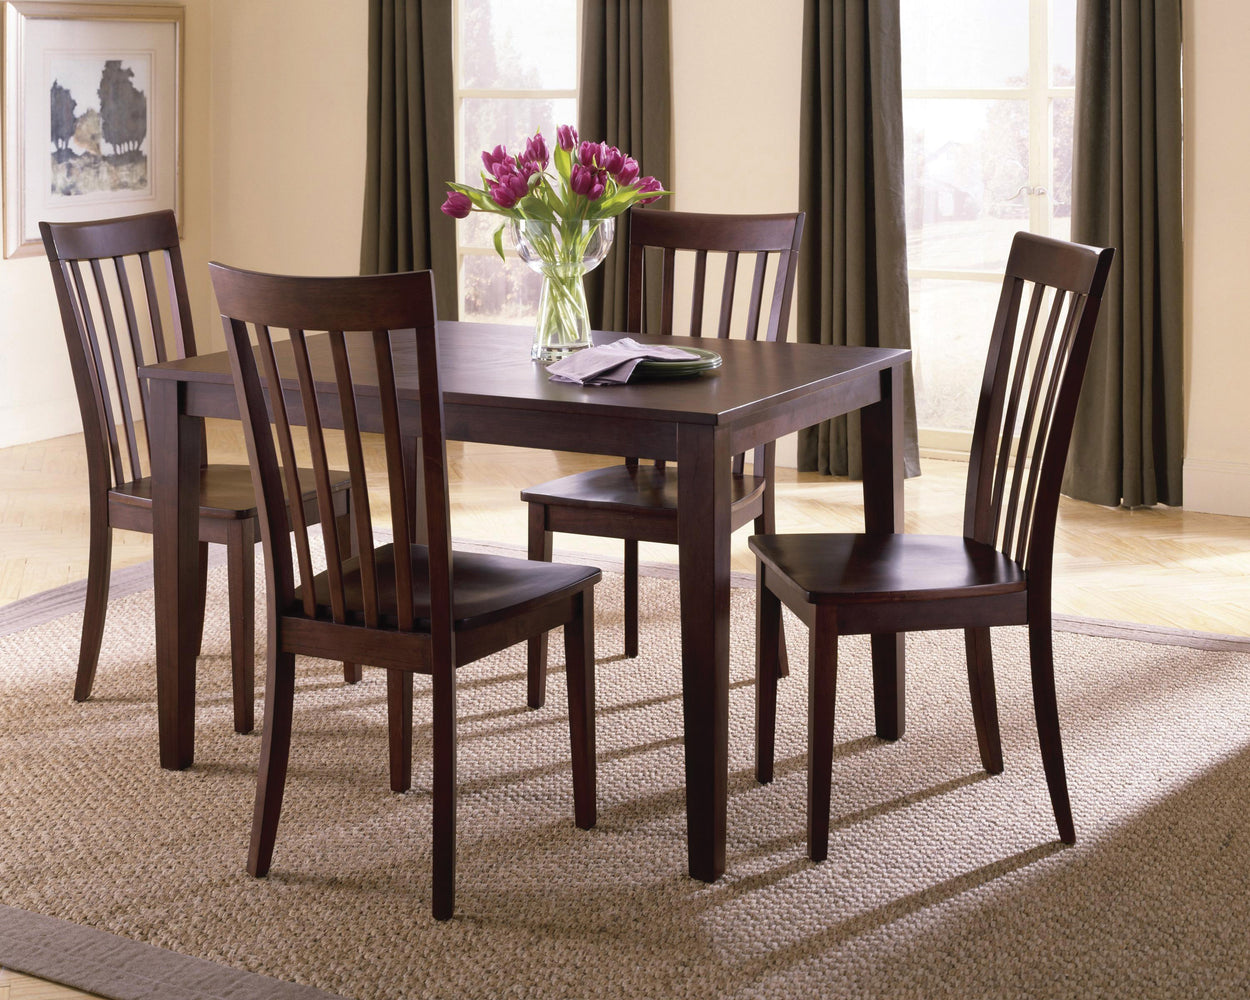 Chocolate Brown Dining Room Set (4 Chairs)